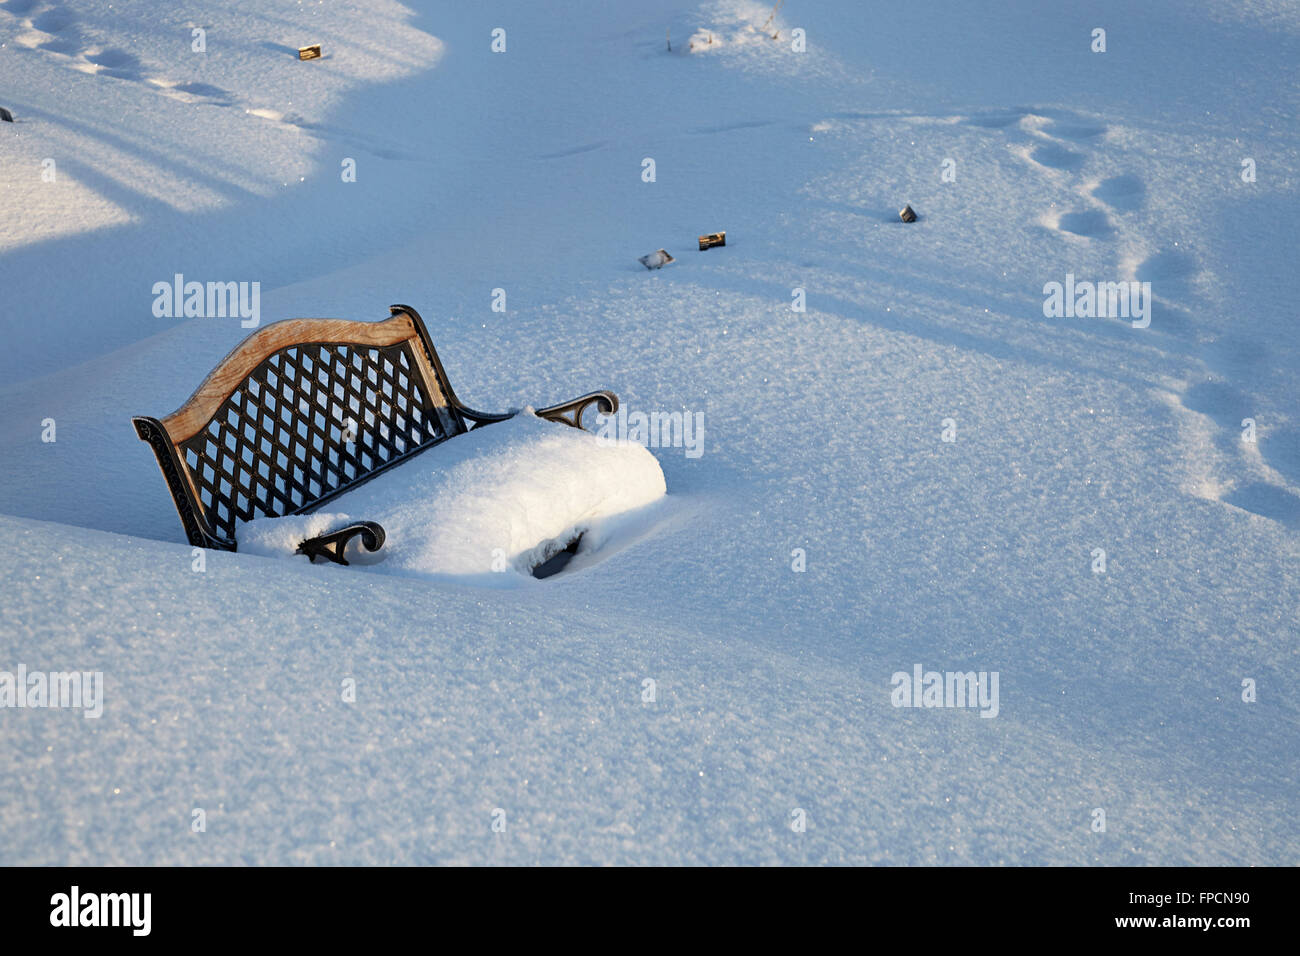 A bench in the snow, with footprints nearby. In the botanical gardens Tromso - Stock Image